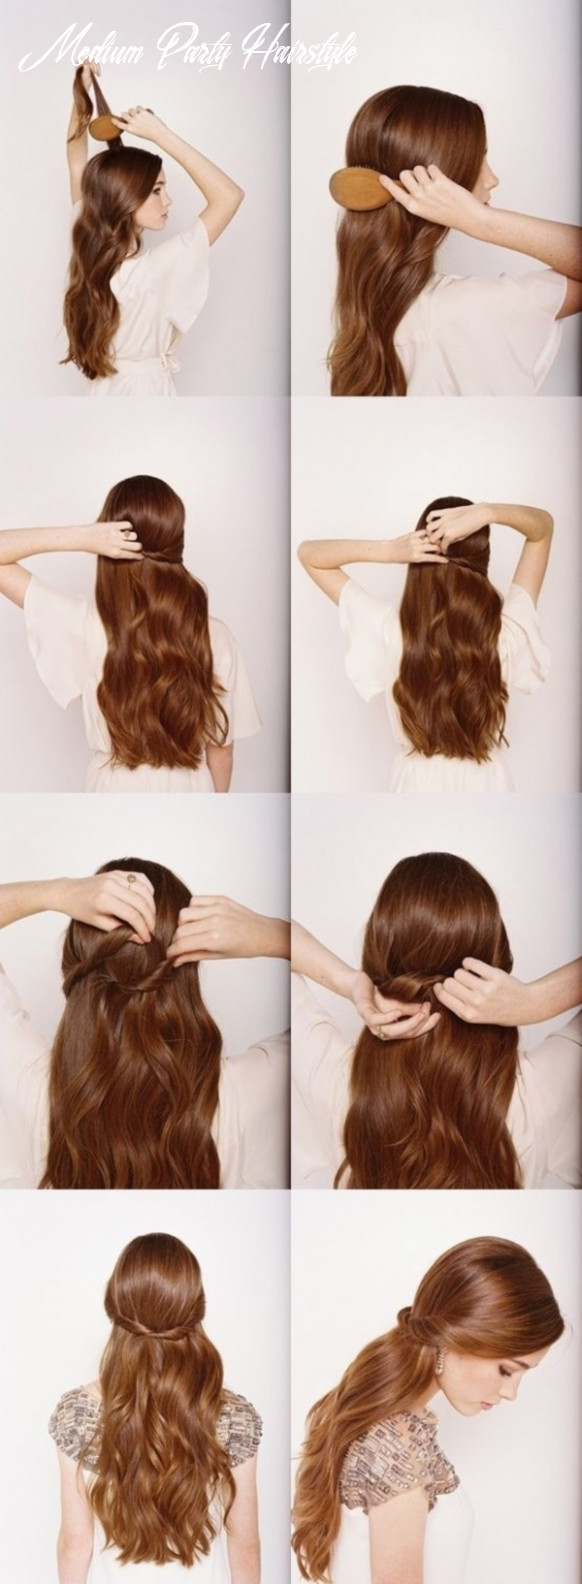 10 Easy DIY Hairstyles for Medium and Long Hair to snatch attention